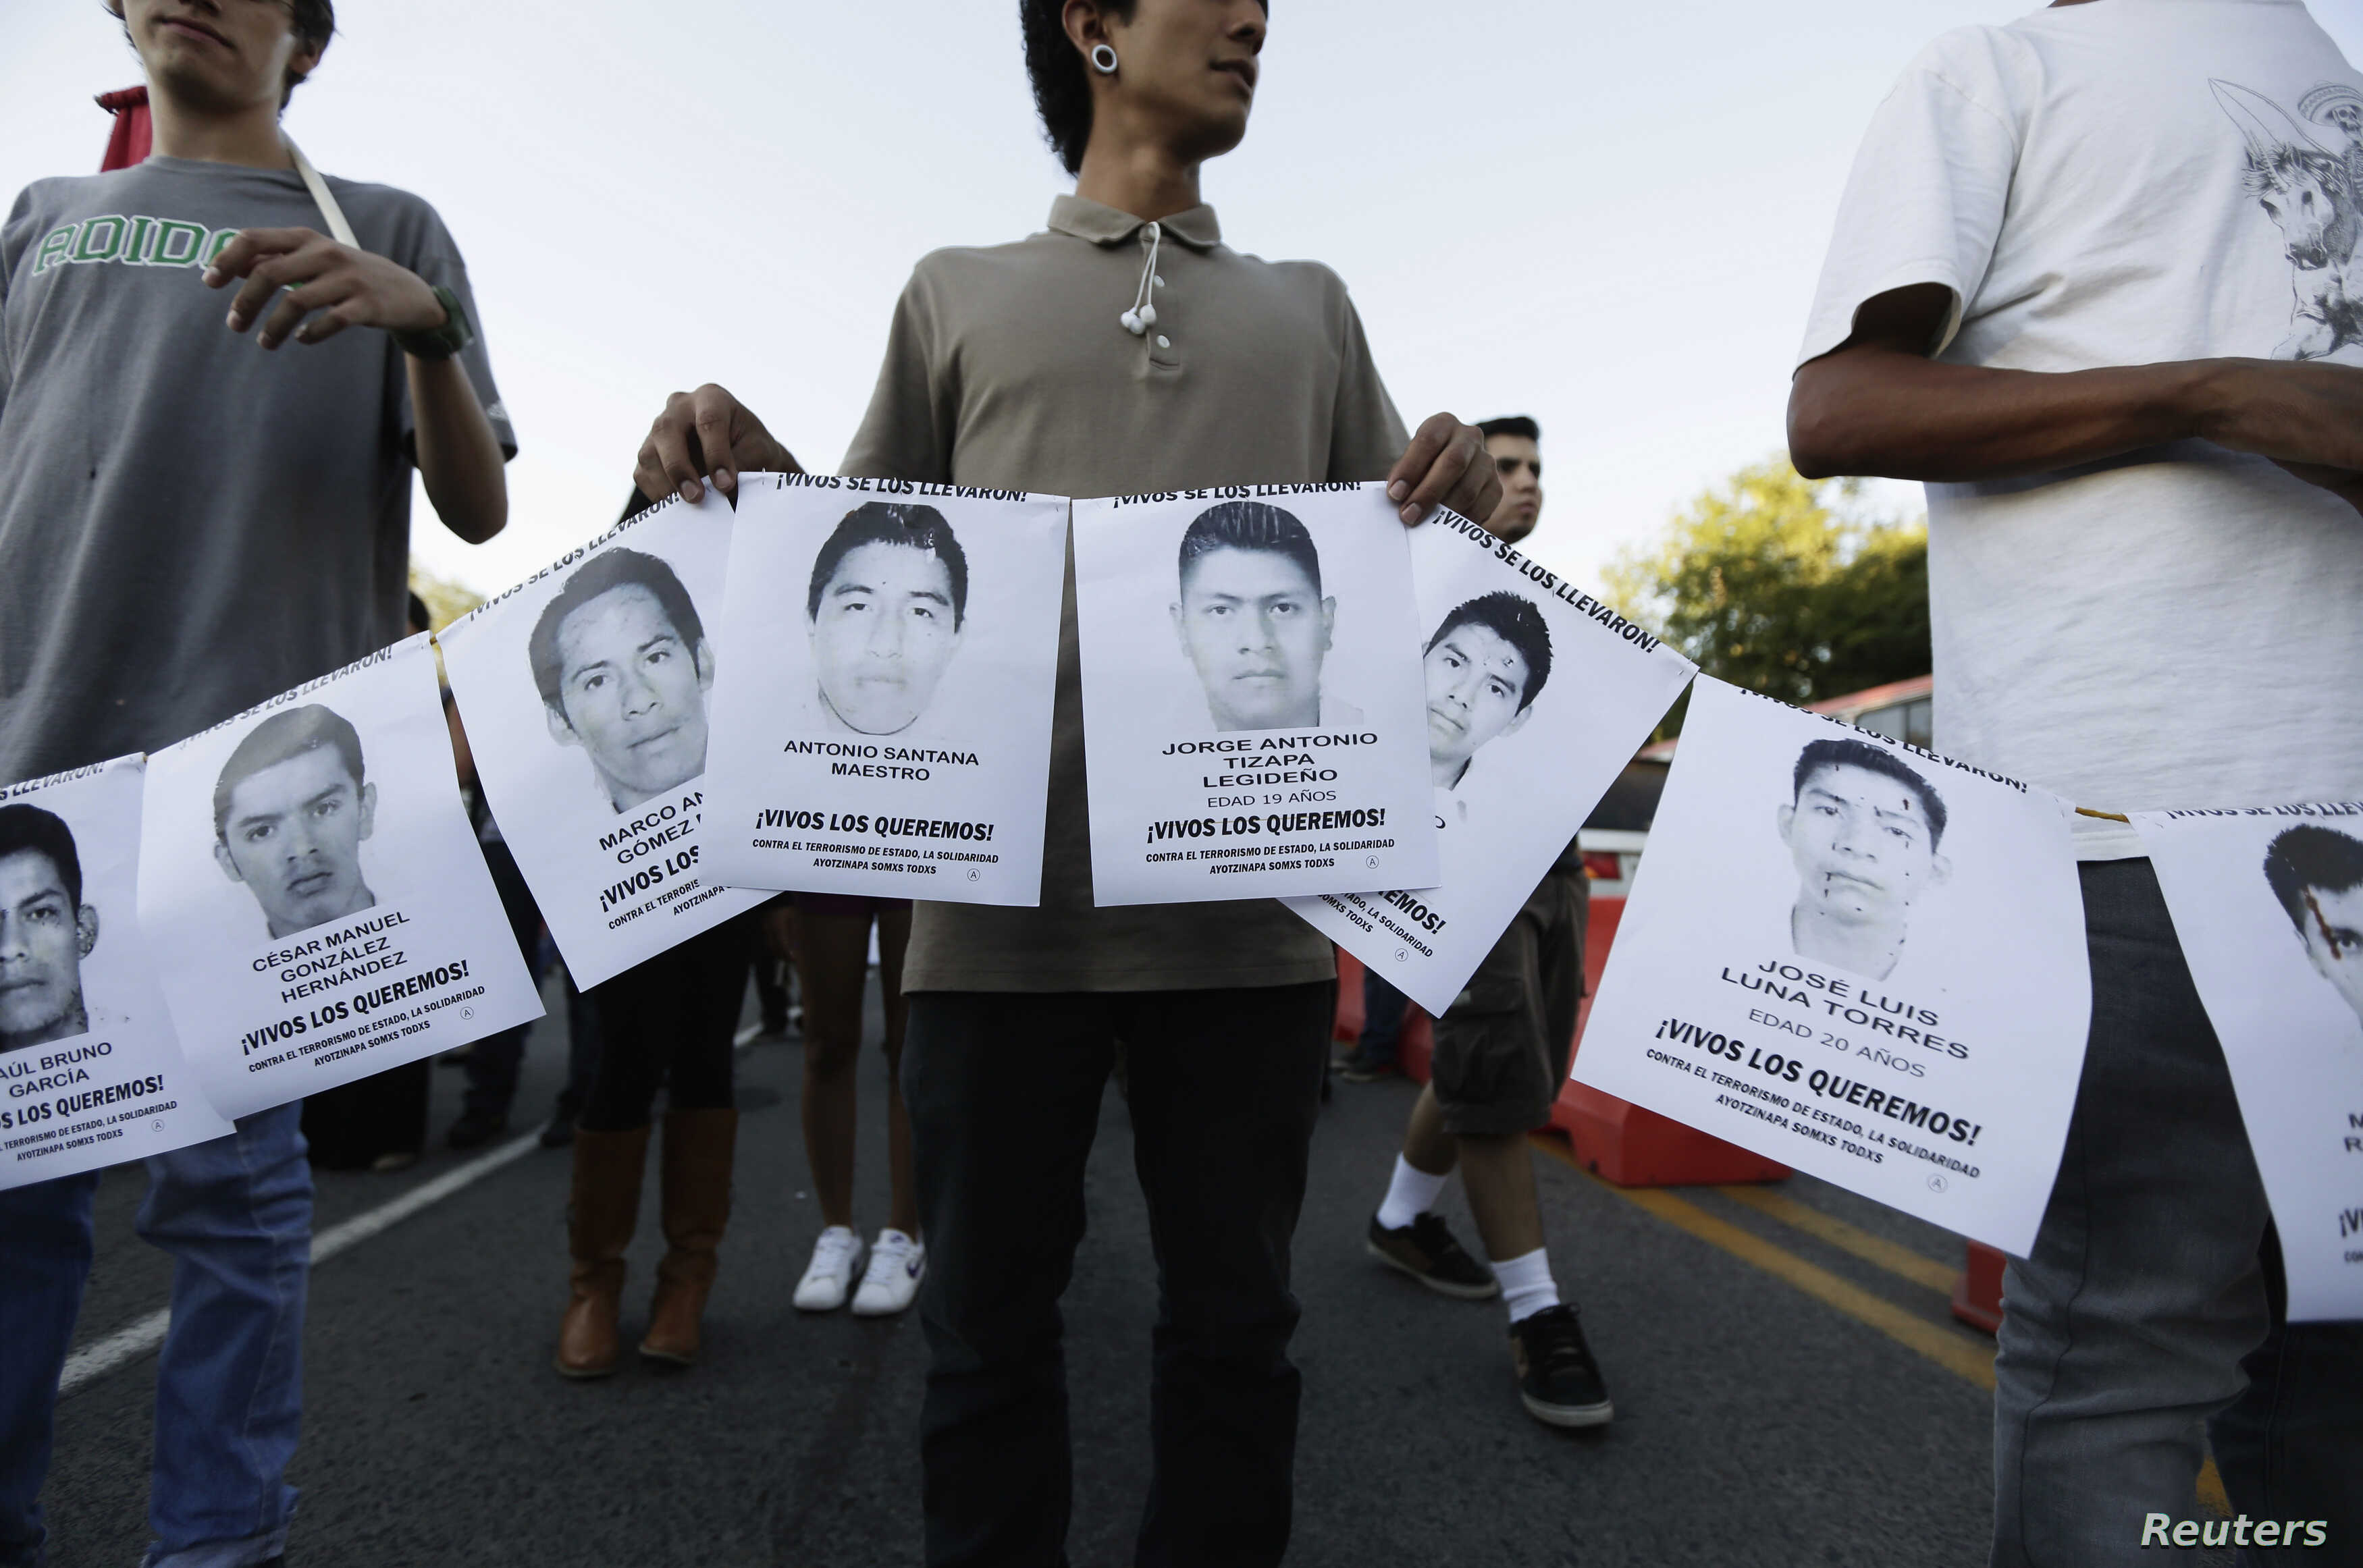 People hold photographs of missing students during a march in their support in Guadalajara Oct. 8, 2014.